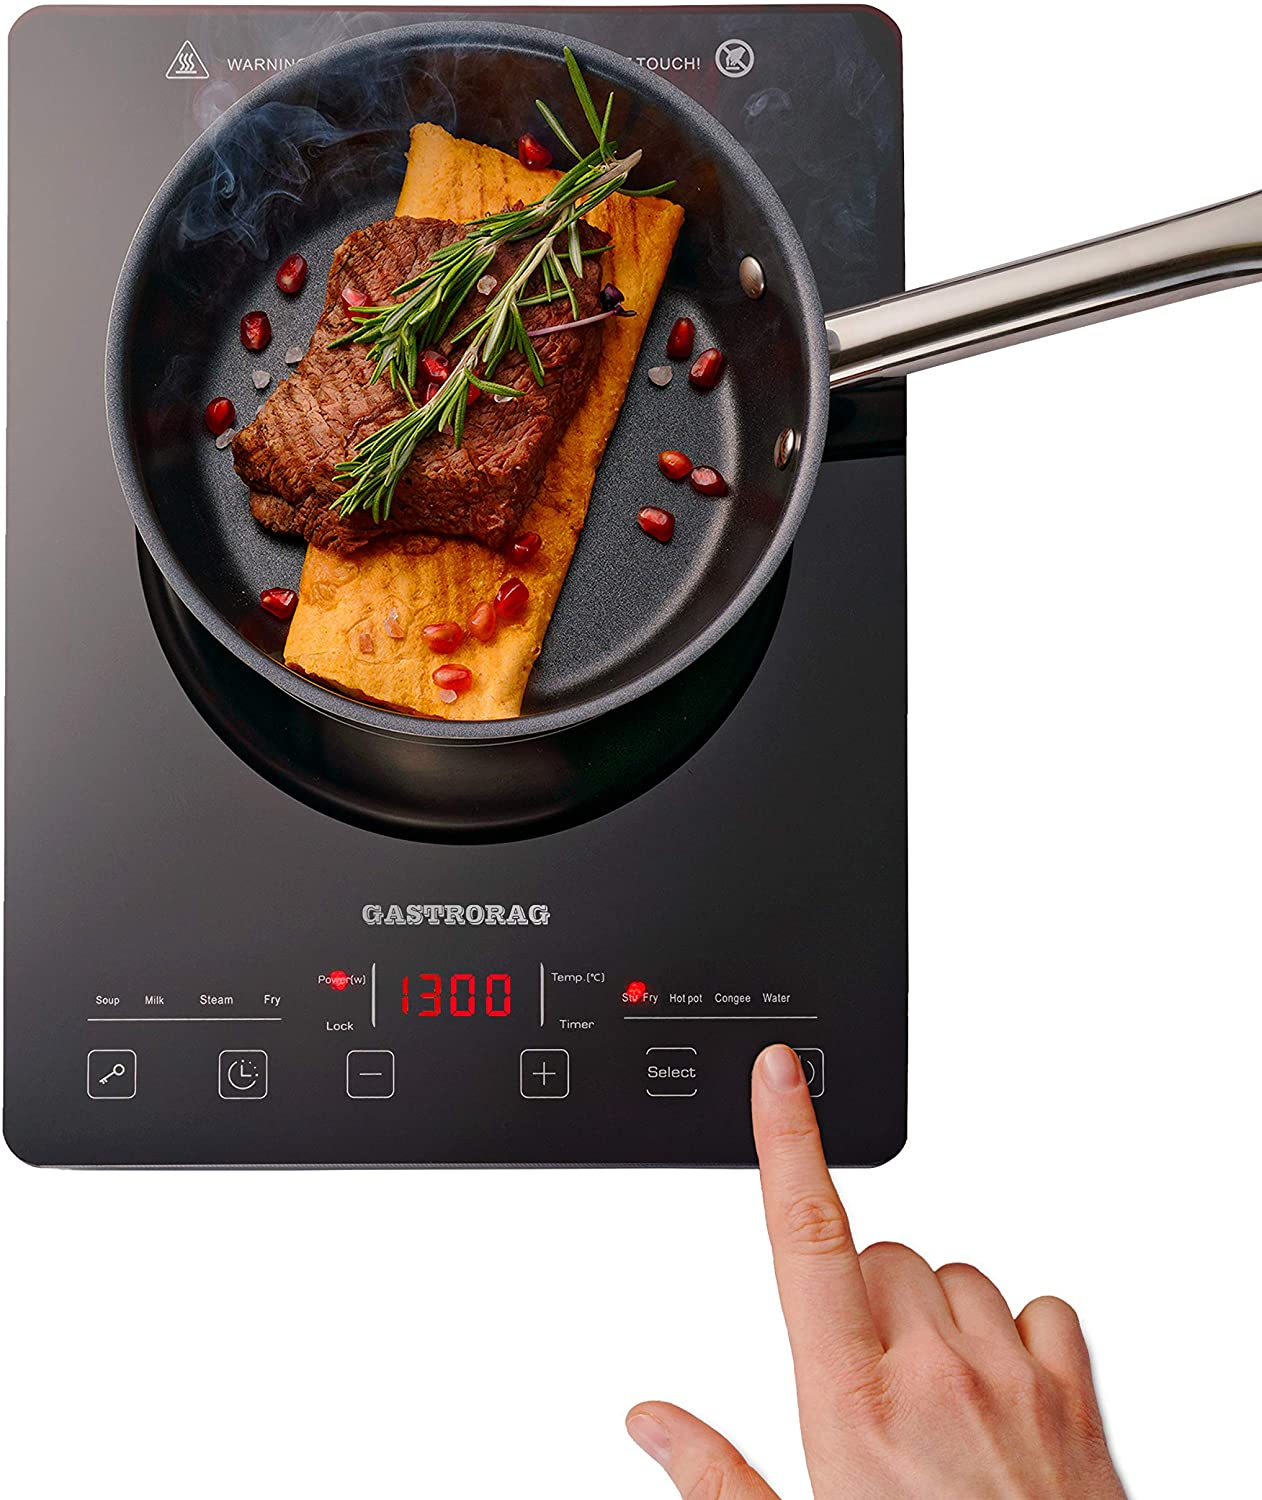 Gastrorag Touch Induction Cooktop